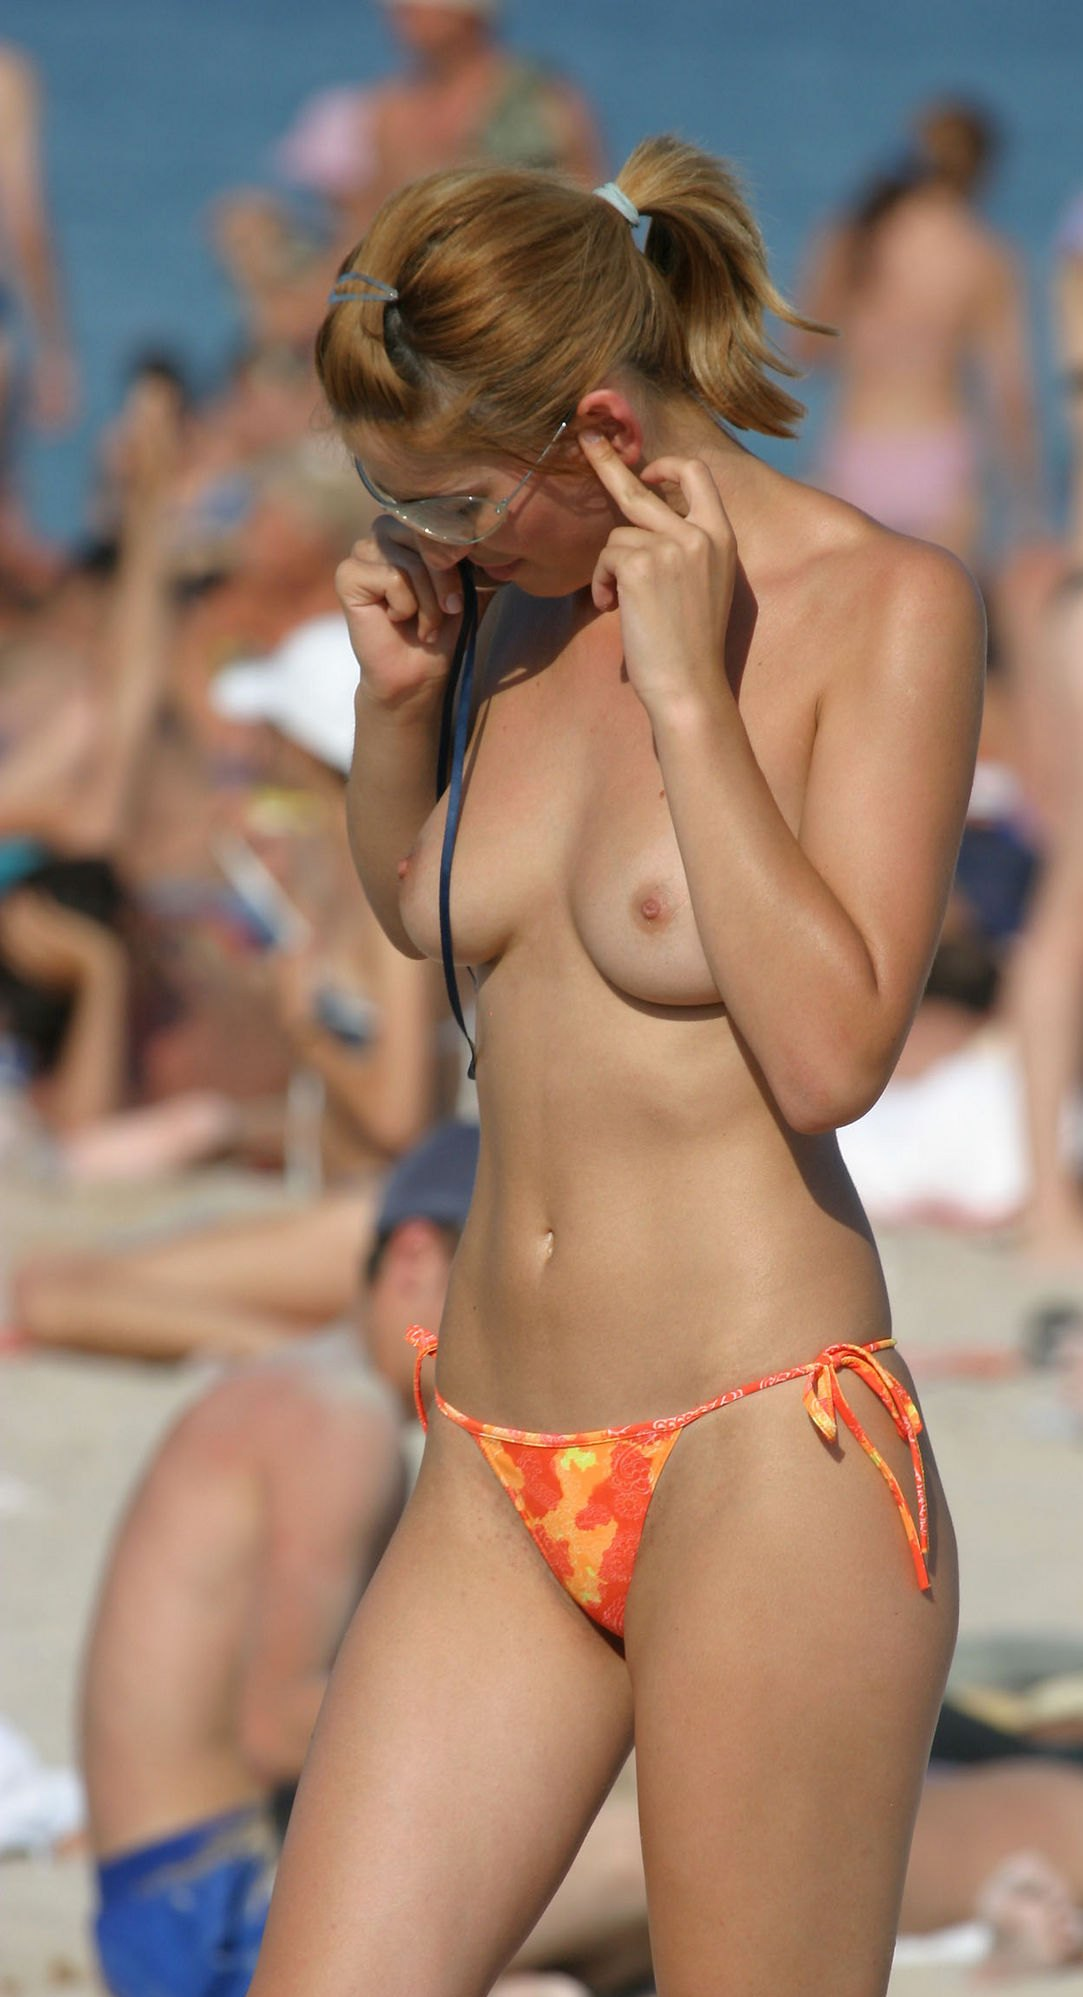 Sensual topless hottie caught by indiscreet photo cam